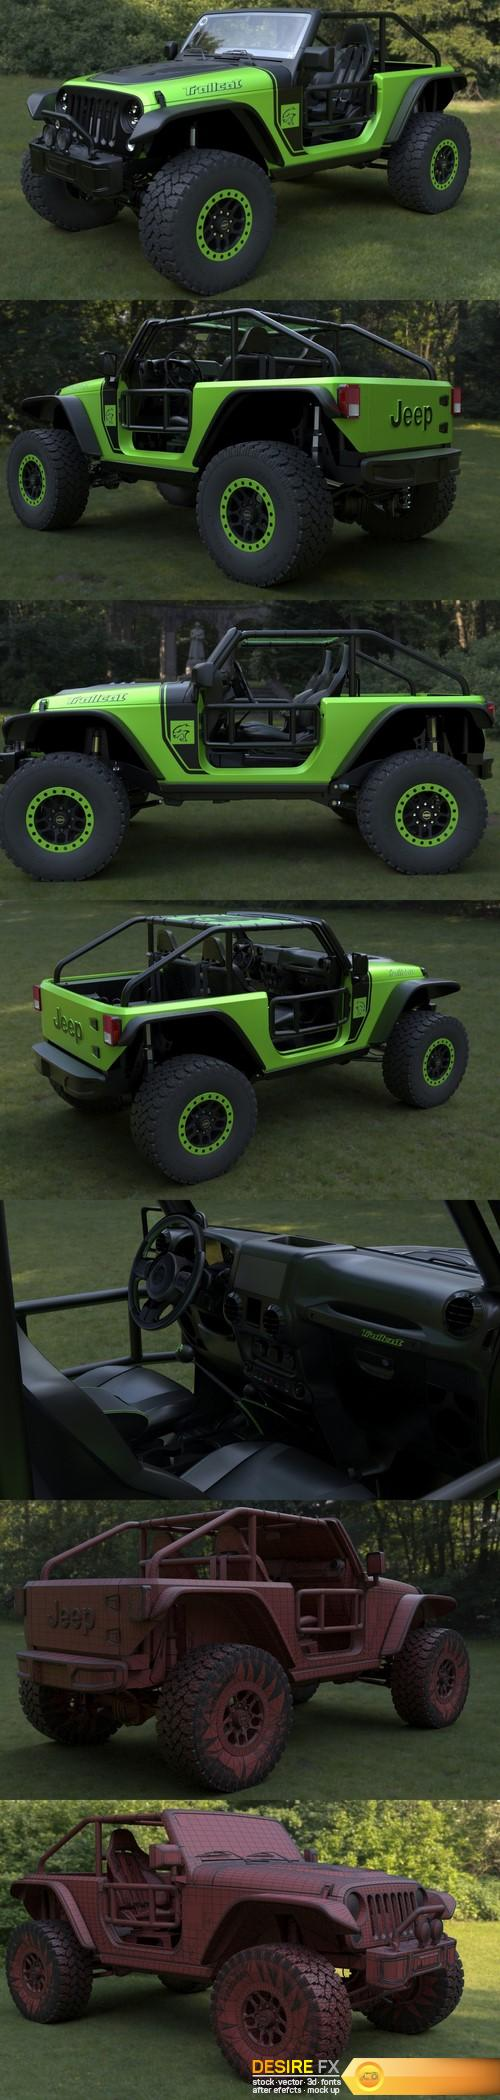 Jeep Wrangler Trailcat Price : wrangler, trailcat, price, Desire, Wrangler, Trailcat, Model, Wrangler,, Badass, Jeep,, Dream